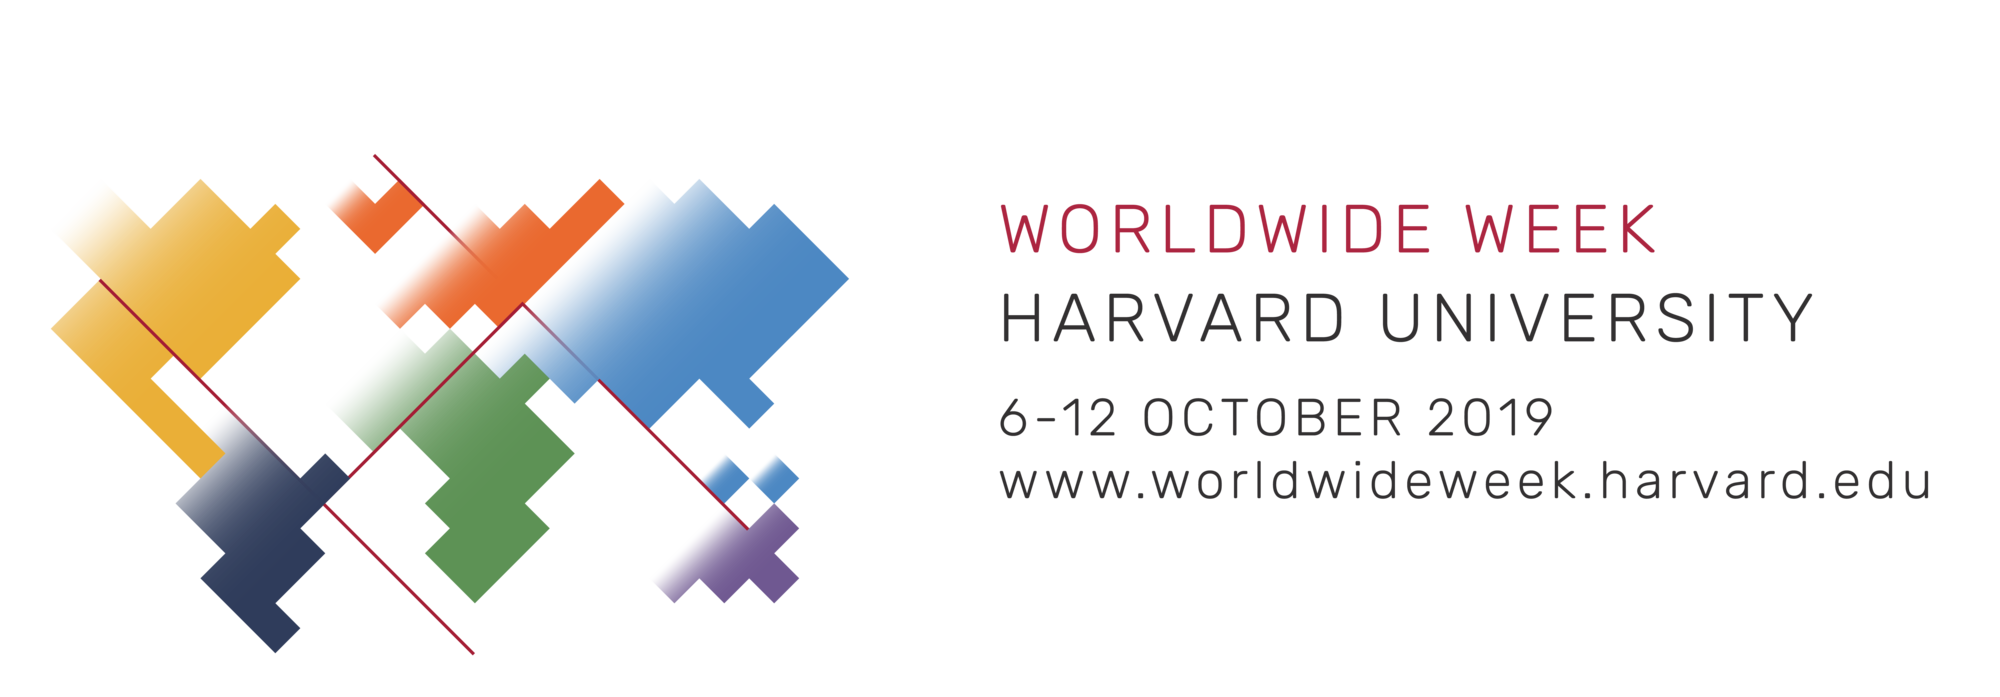 Image of Harvard Worldwide Week 2019 logo